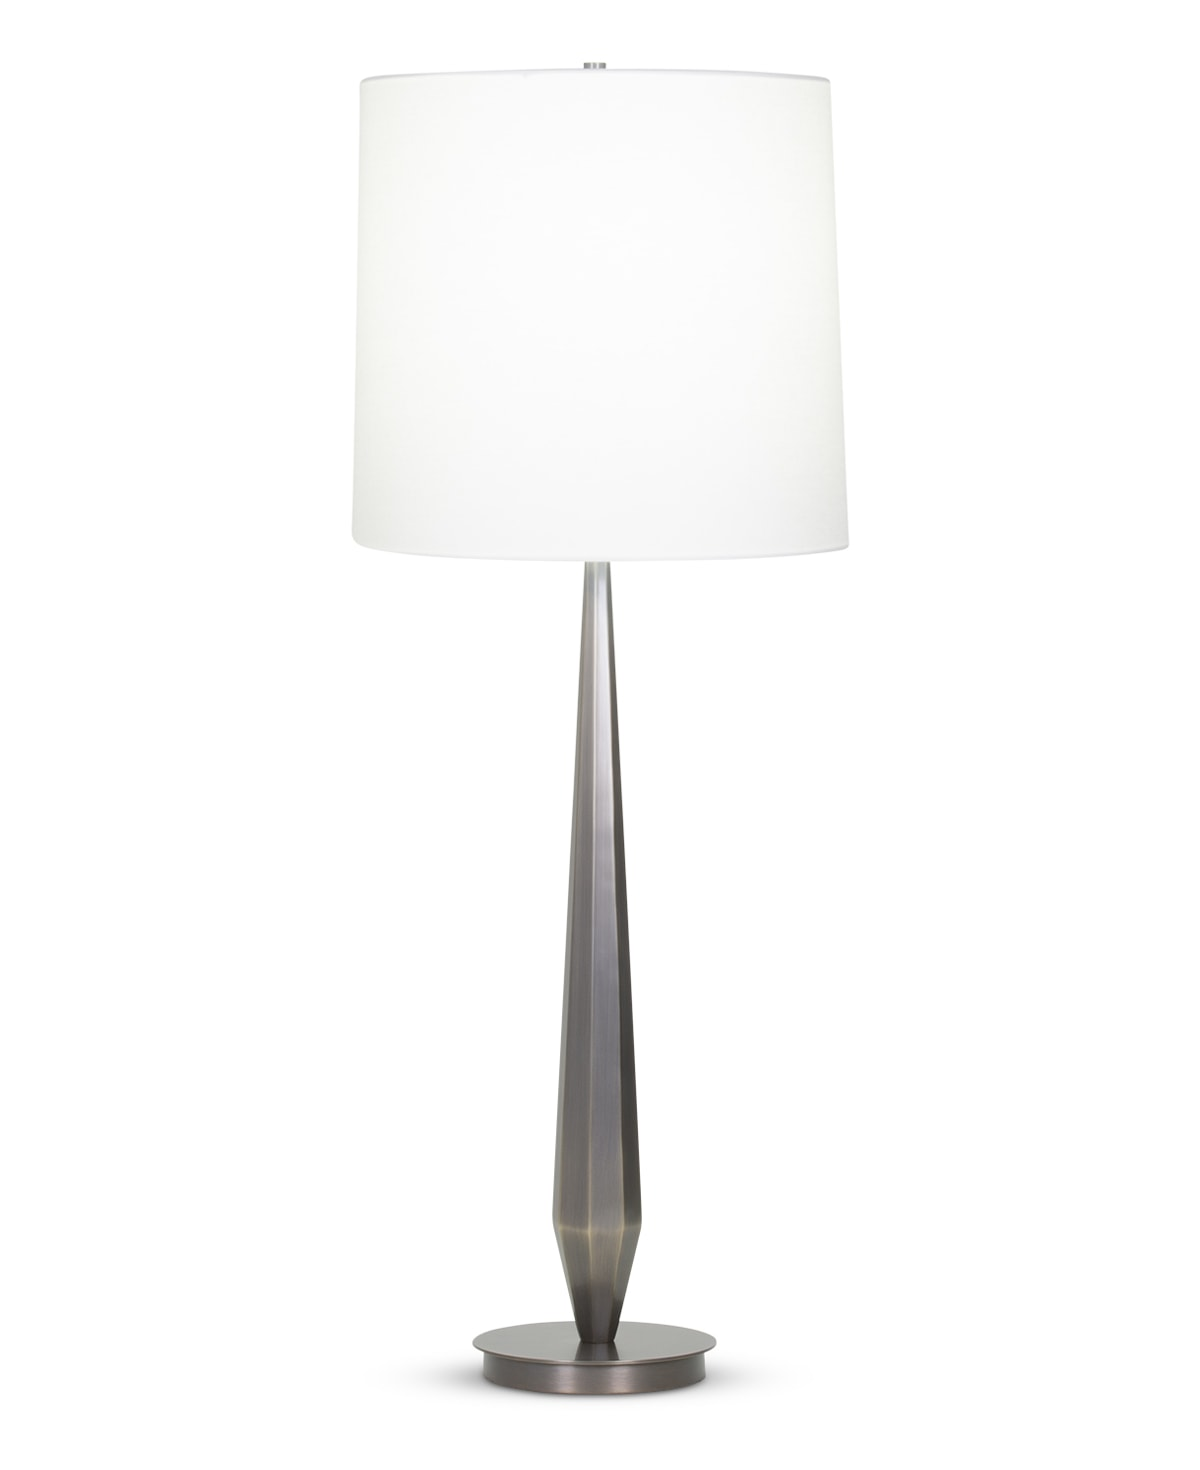 FlowDecor Caden Table Lamp in metal with bronze finish and off-white linen tapered drum shade (# 4091)